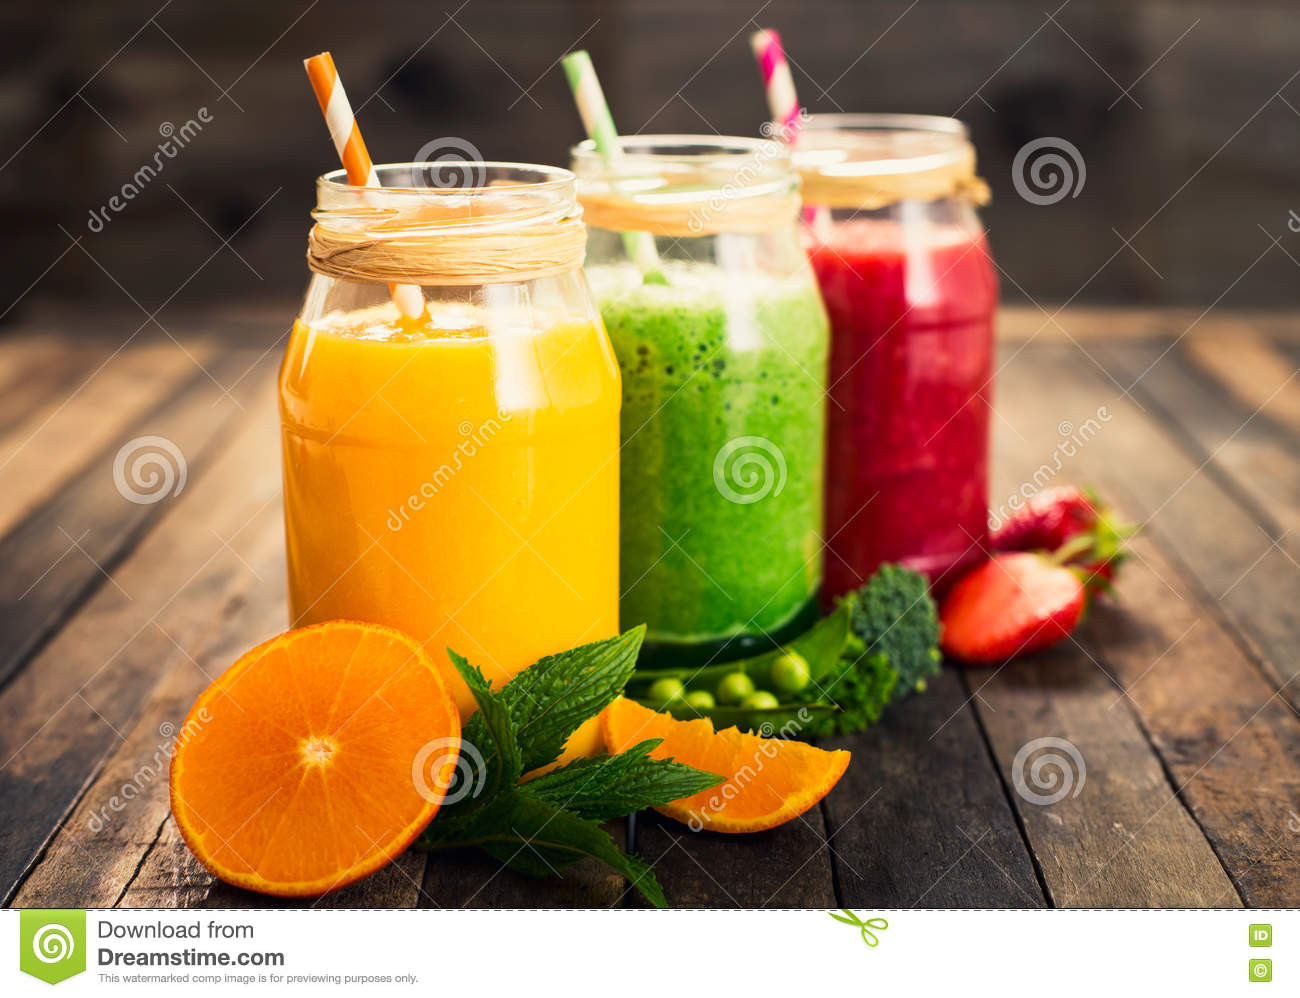 Veg And Fruit Smoothies  Healthy Fruit And Ve able Smoothies Stock Image Image